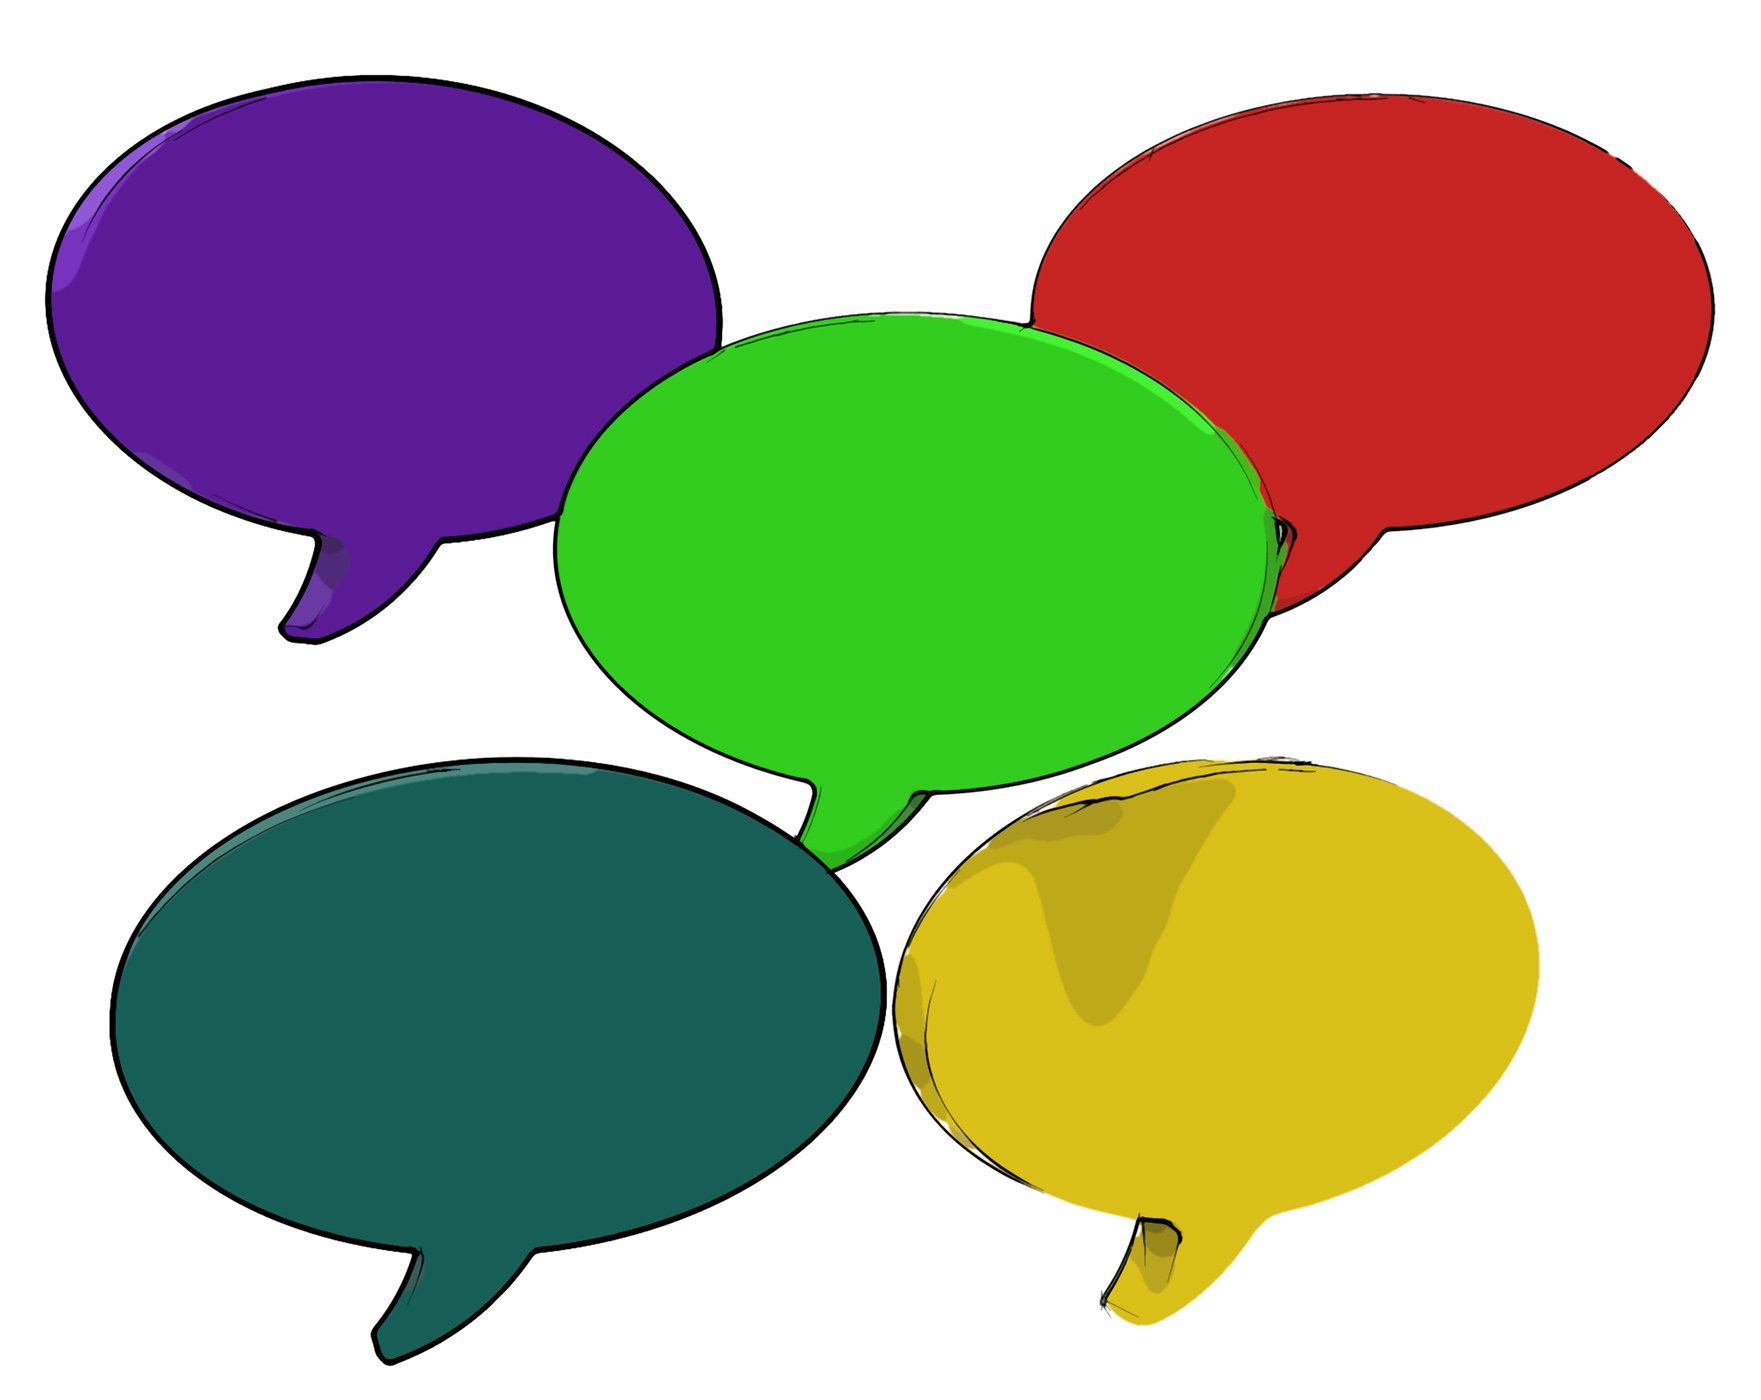 Blank Speech Balloon Shows Copy space For Thought Chat Or Idea, Word, Space, Thought, Think, HQ Photo